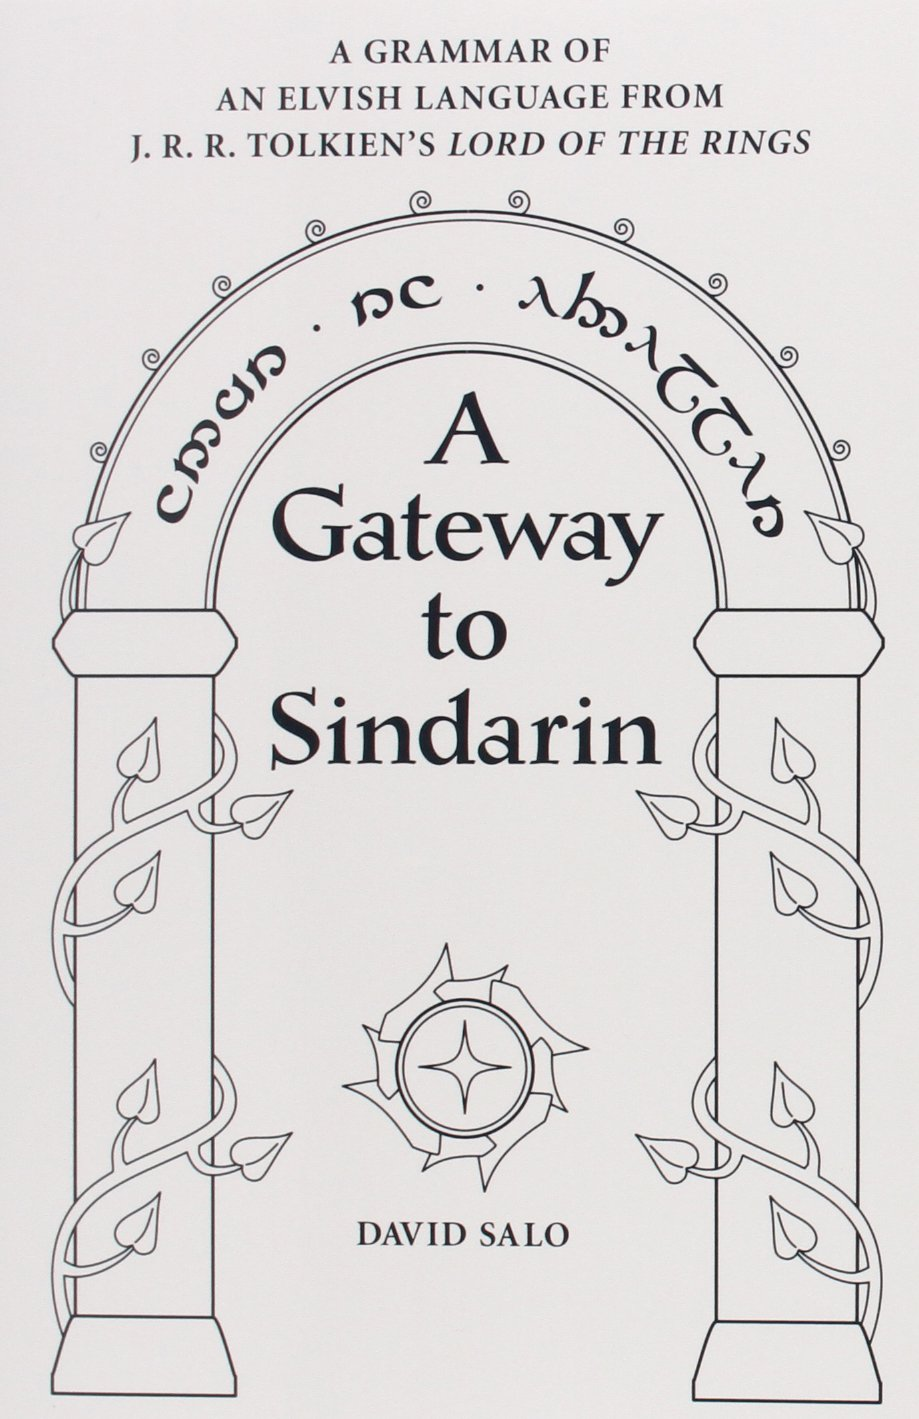 Amazon Com A Gateway To Sindarin A Grammar Of An Elvish Language From Jrr Tolkien S Lord Of The Rings 9780874809121 Salo David Books